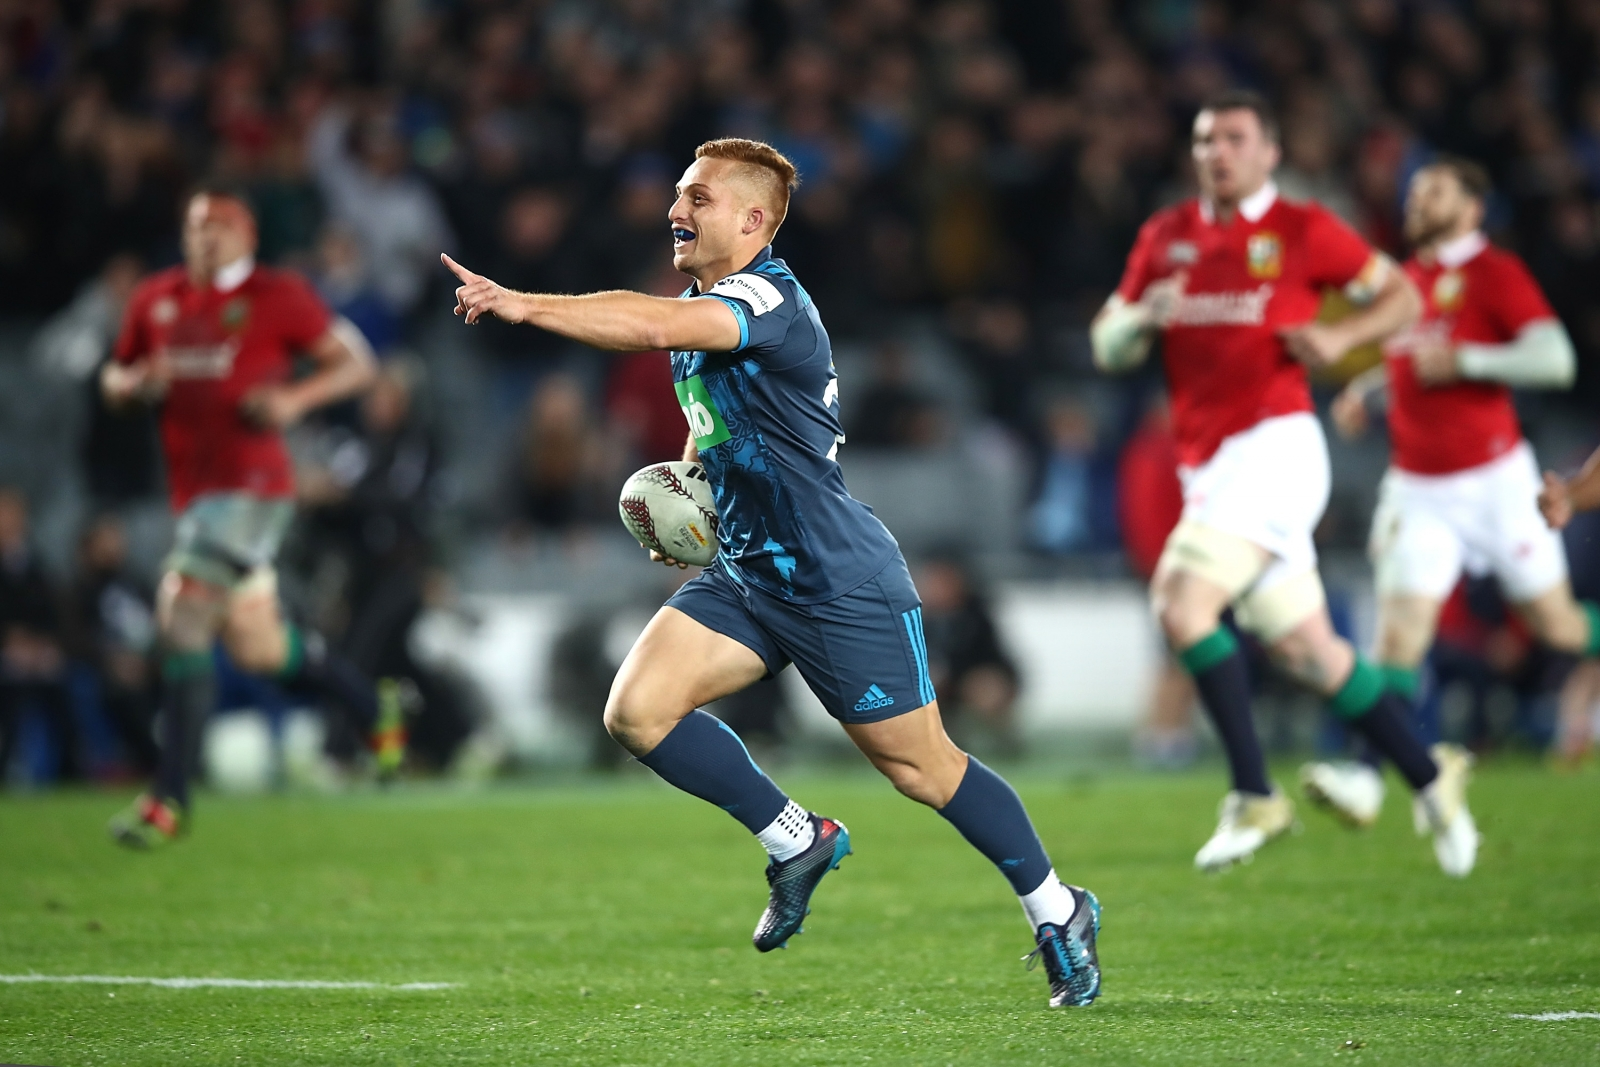 Jones named to captain Lions against Crusaders